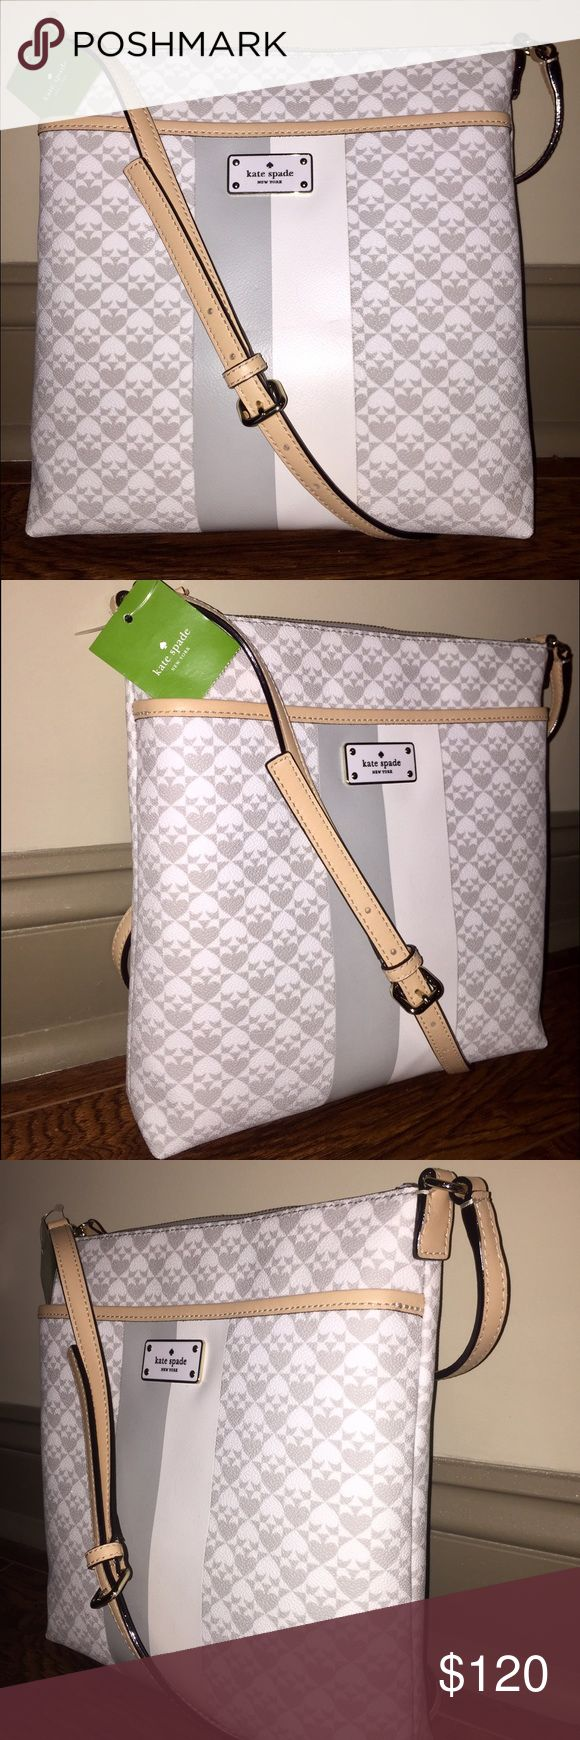 NWT Kate Spade Keisha Cross-body Purse! Grey/White NWT kate spade Bags Crossbody Bags